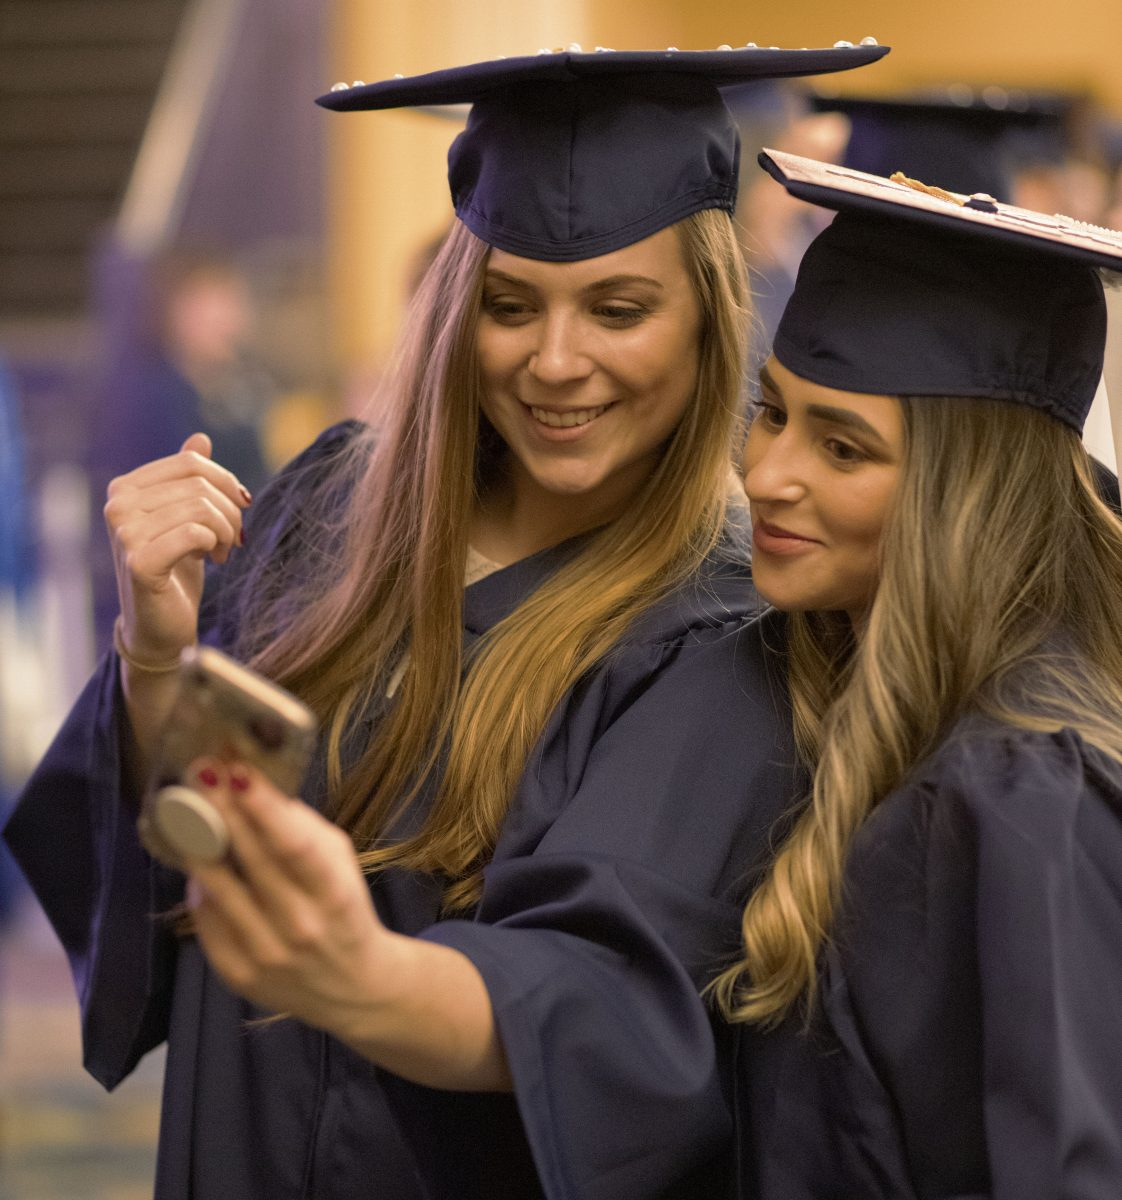 Two CEIN graduates take a selfie after their graduation ceremony.